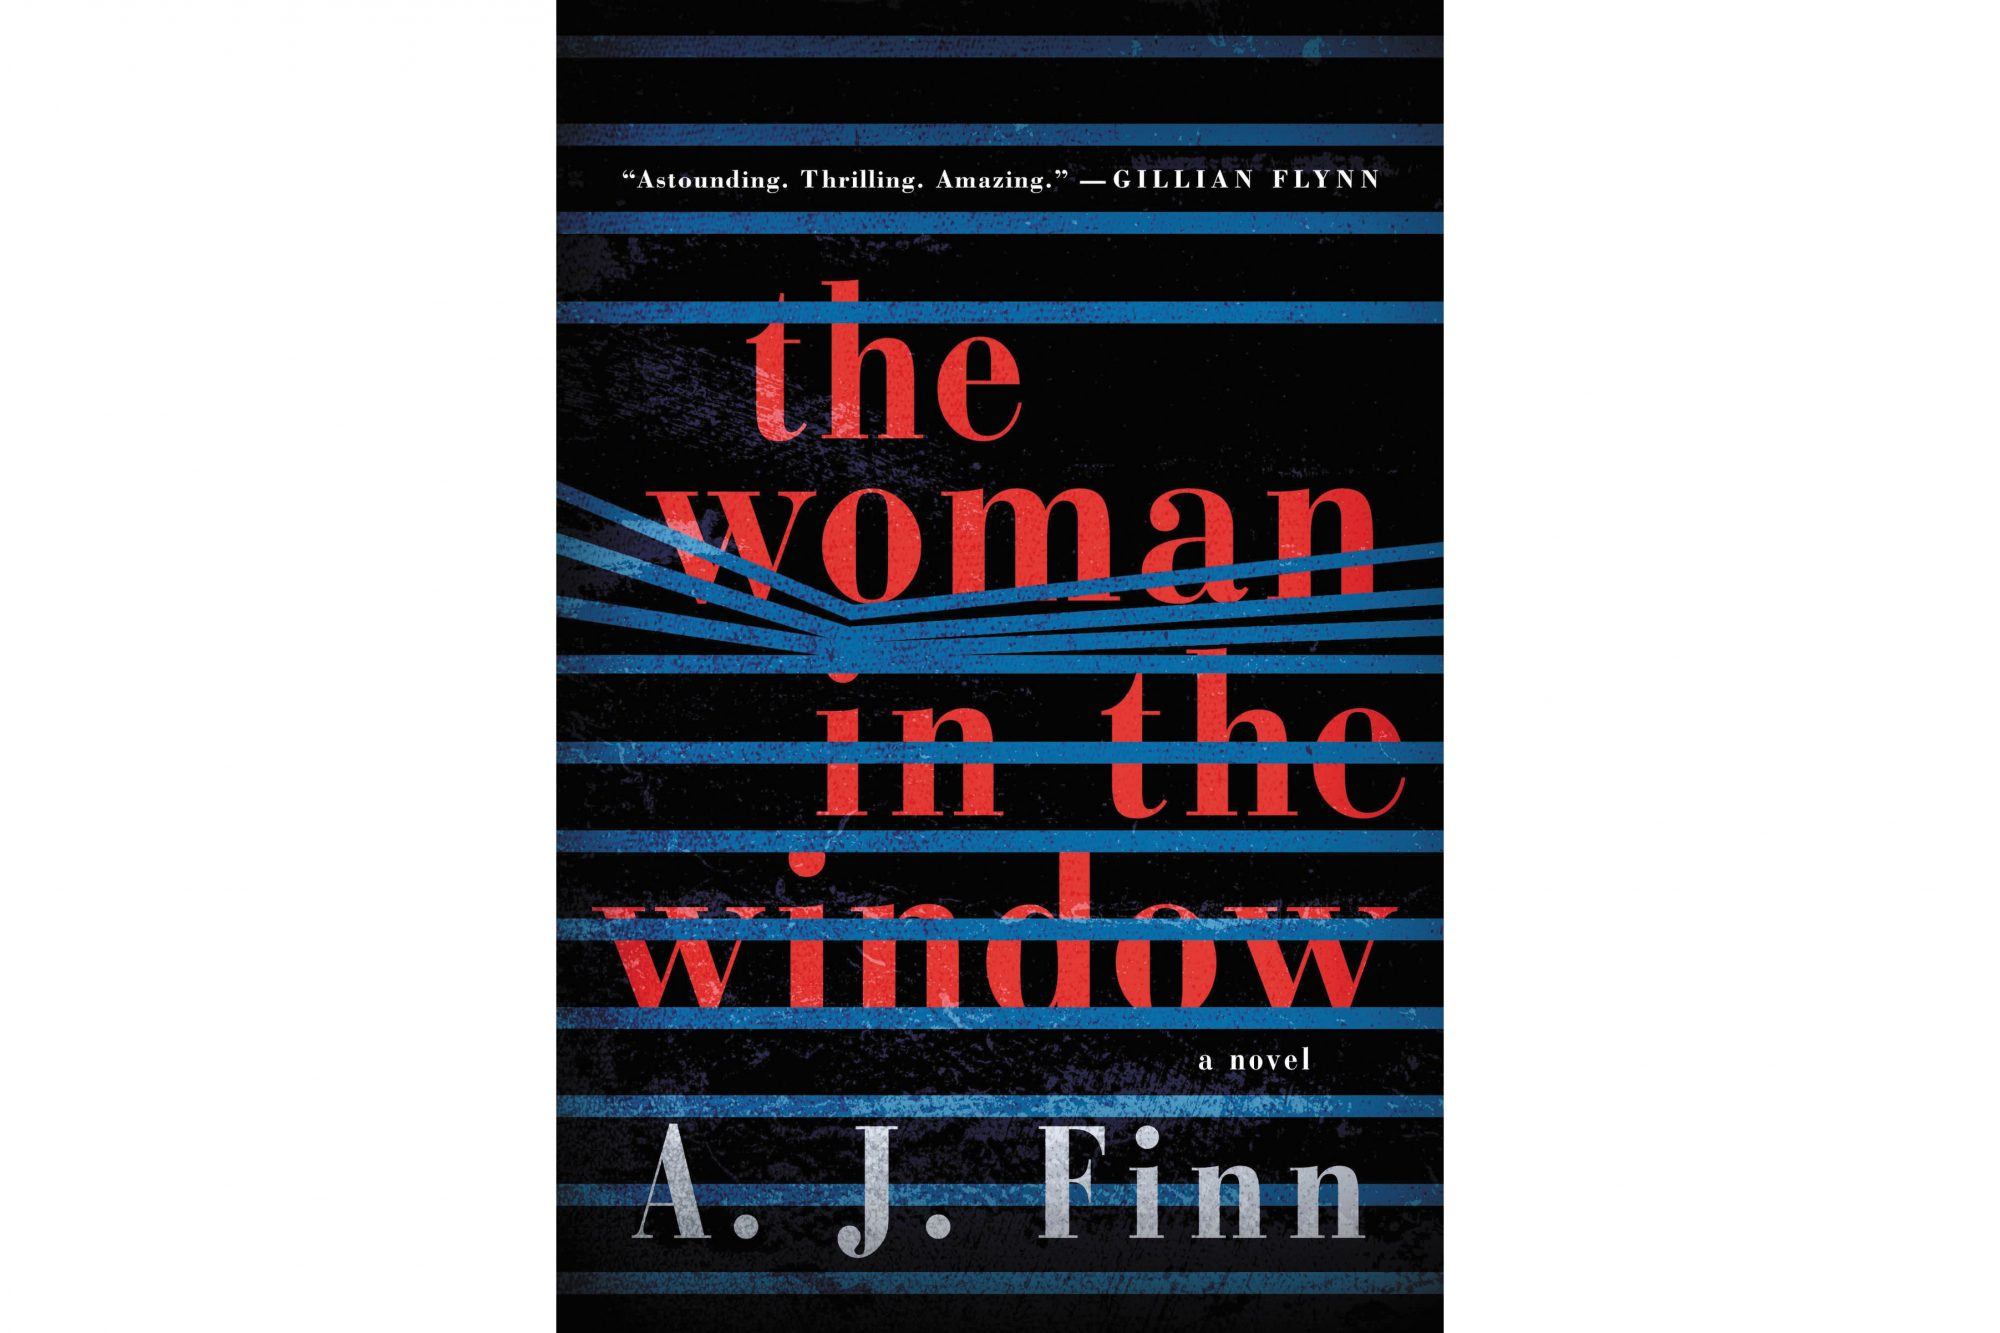 The Woman in the Window, by A. J. Finn